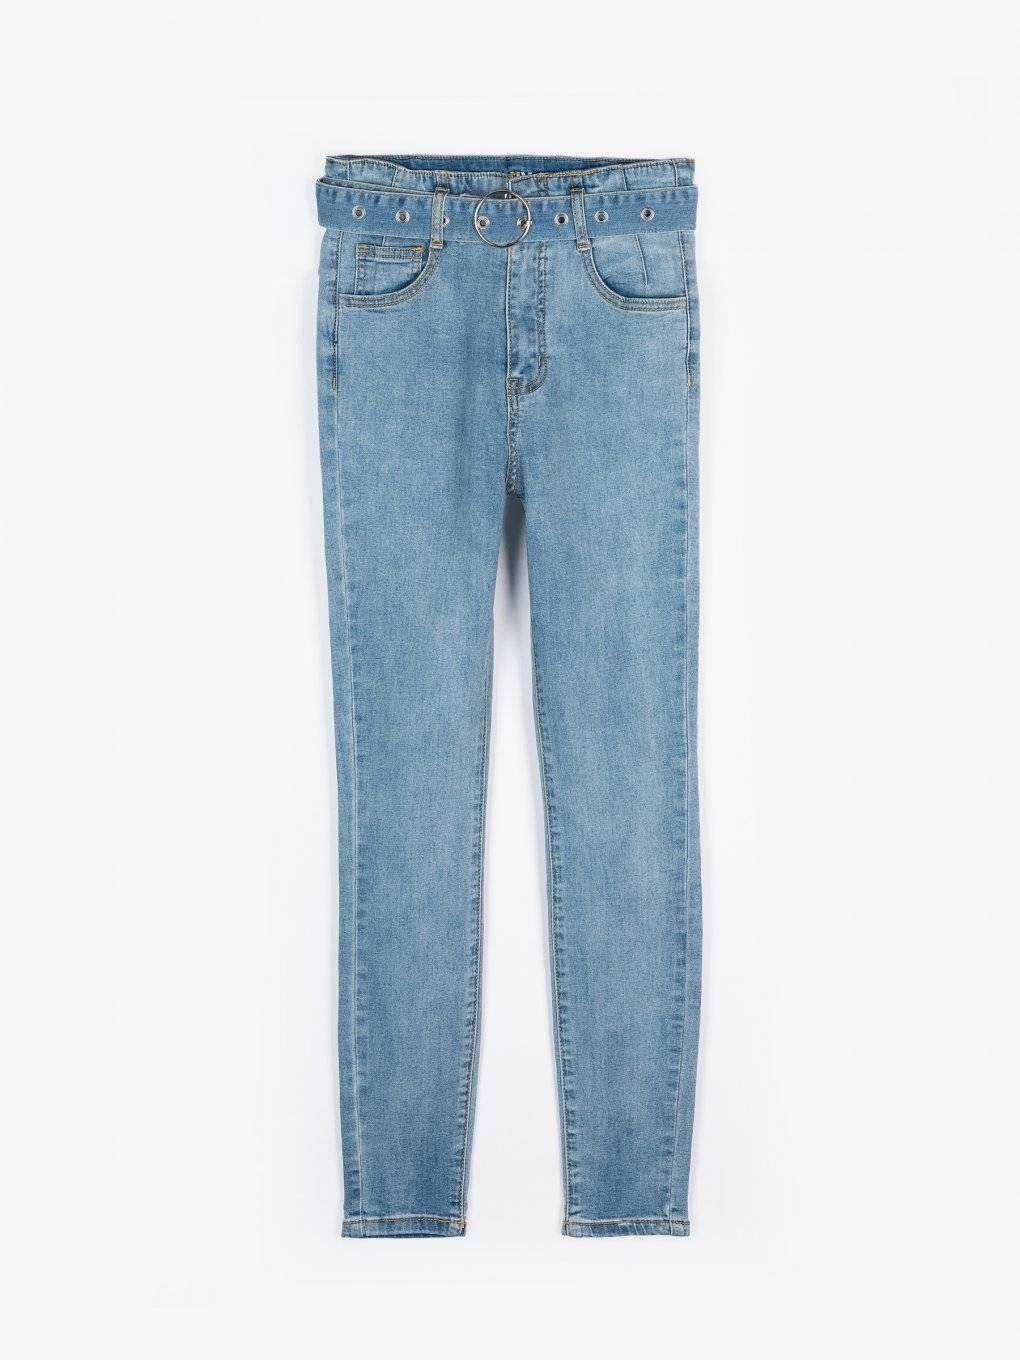 High waisted skinny jeans with belt